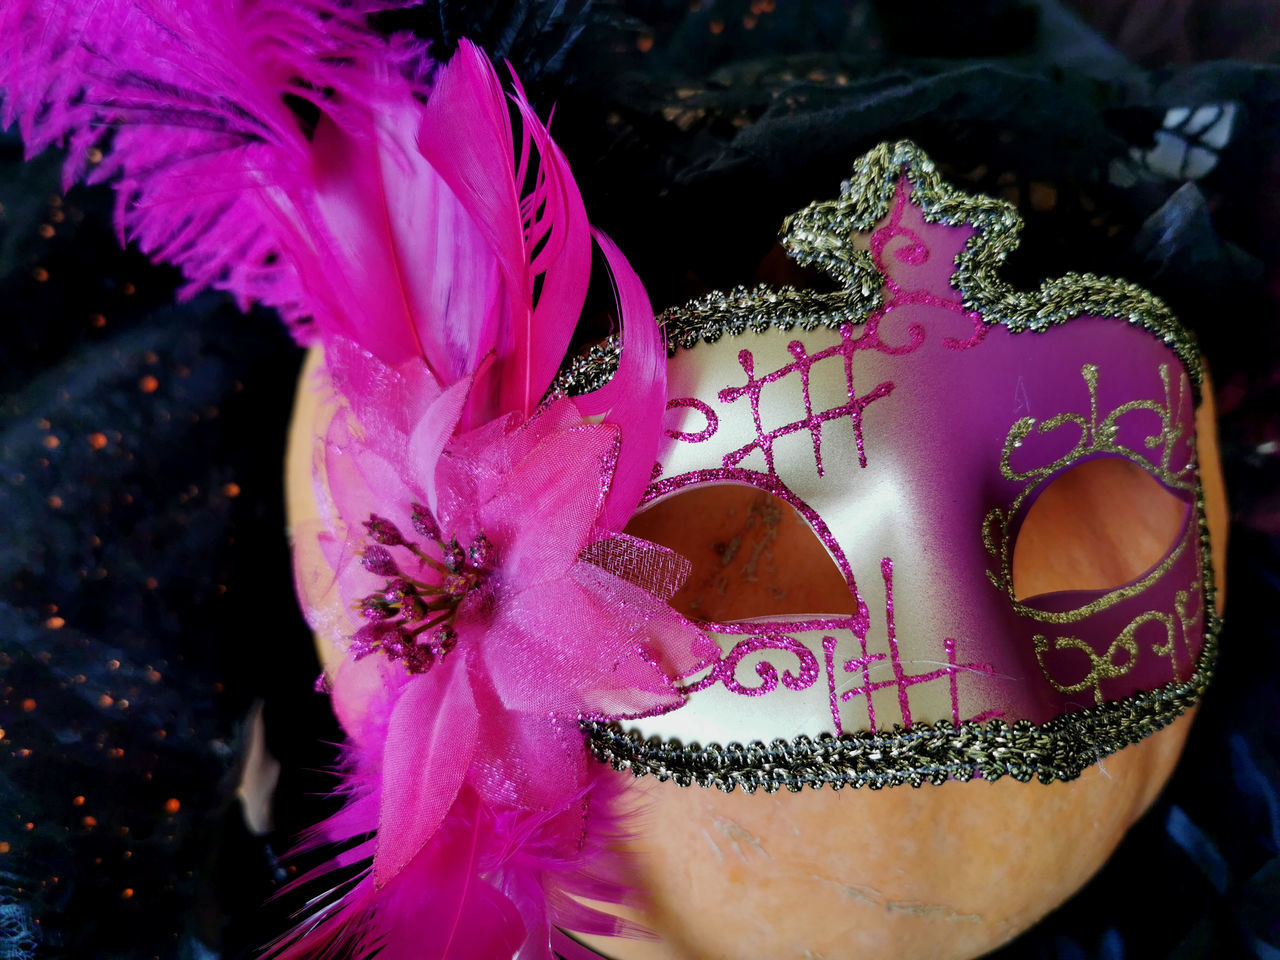 pink color, close-up, focus on foreground, no people, flower, flowering plant, day, nature, art and craft, mask, beauty in nature, creativity, outdoors, disguise, plant, representation, mask - disguise, human representation, costume, vulnerability, purple, carnival - celebration event